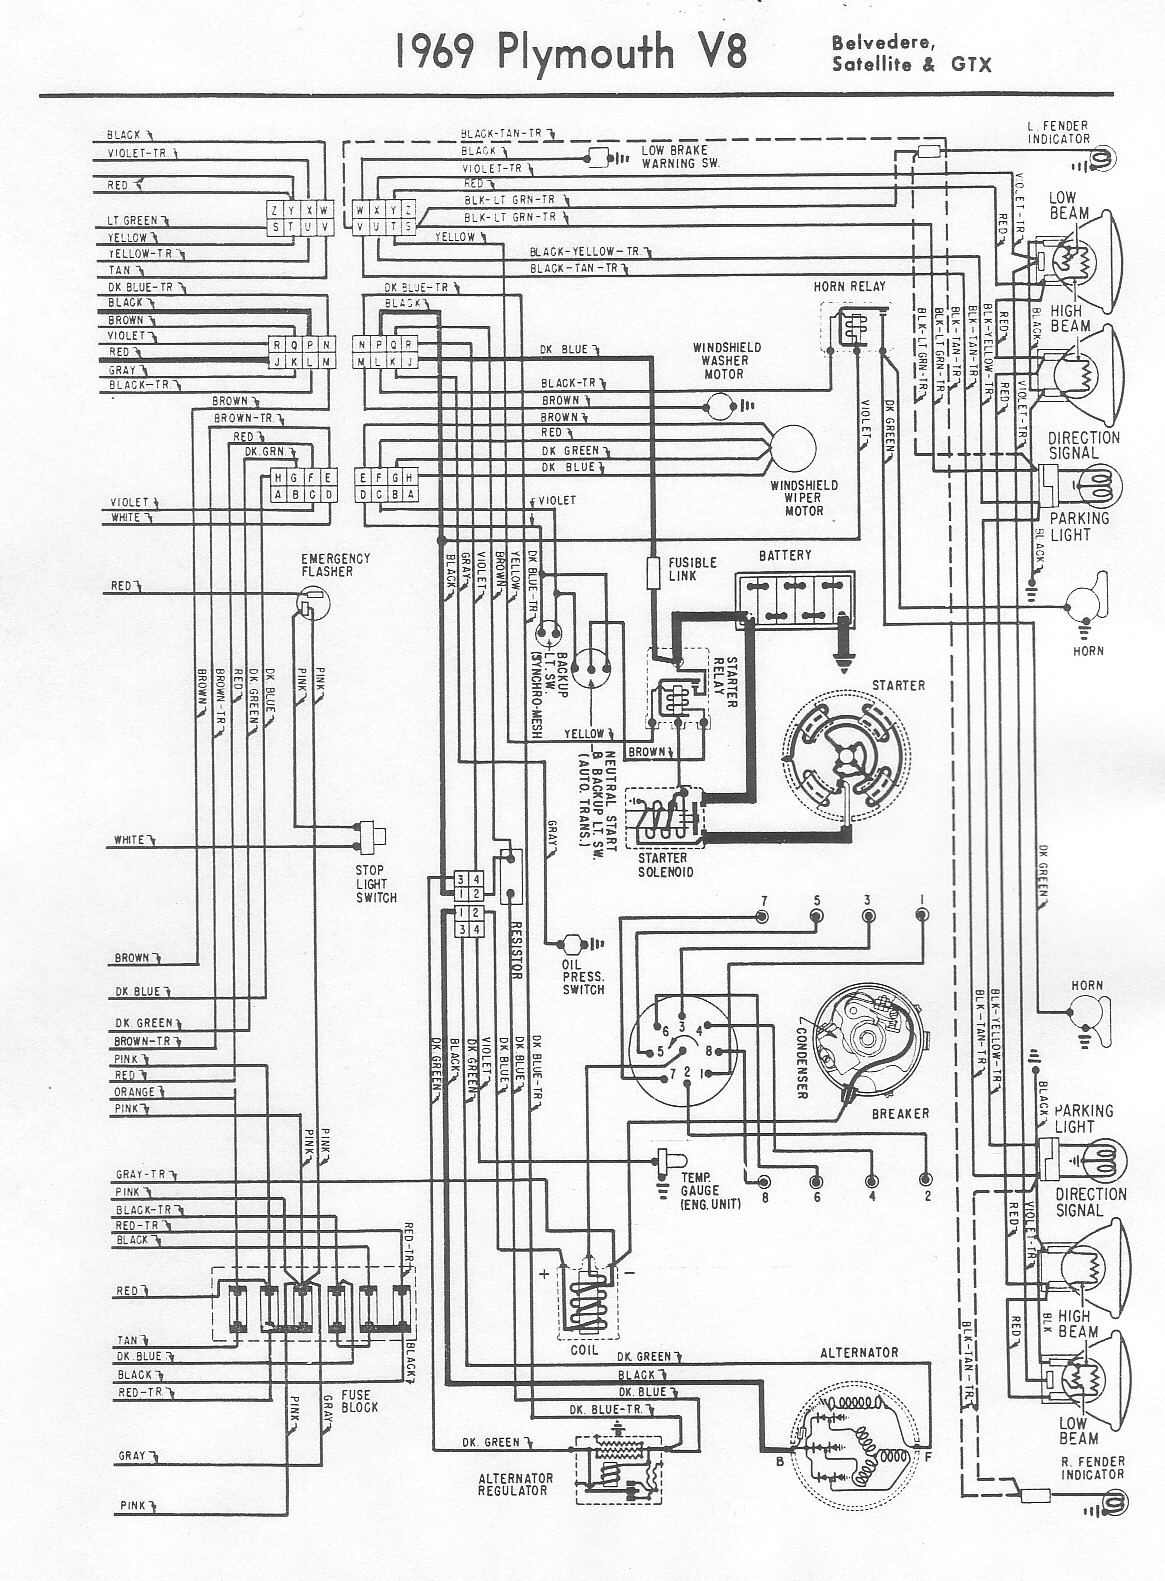 74 Satellite Headlight Switch Wiring - Wiring Diagram Data Oreo on painless wiring headlight switch, neutral starter switch, painless wiring speed sensor, painless wiring fuse box, painless wiring battery switch, painless wiring horn,